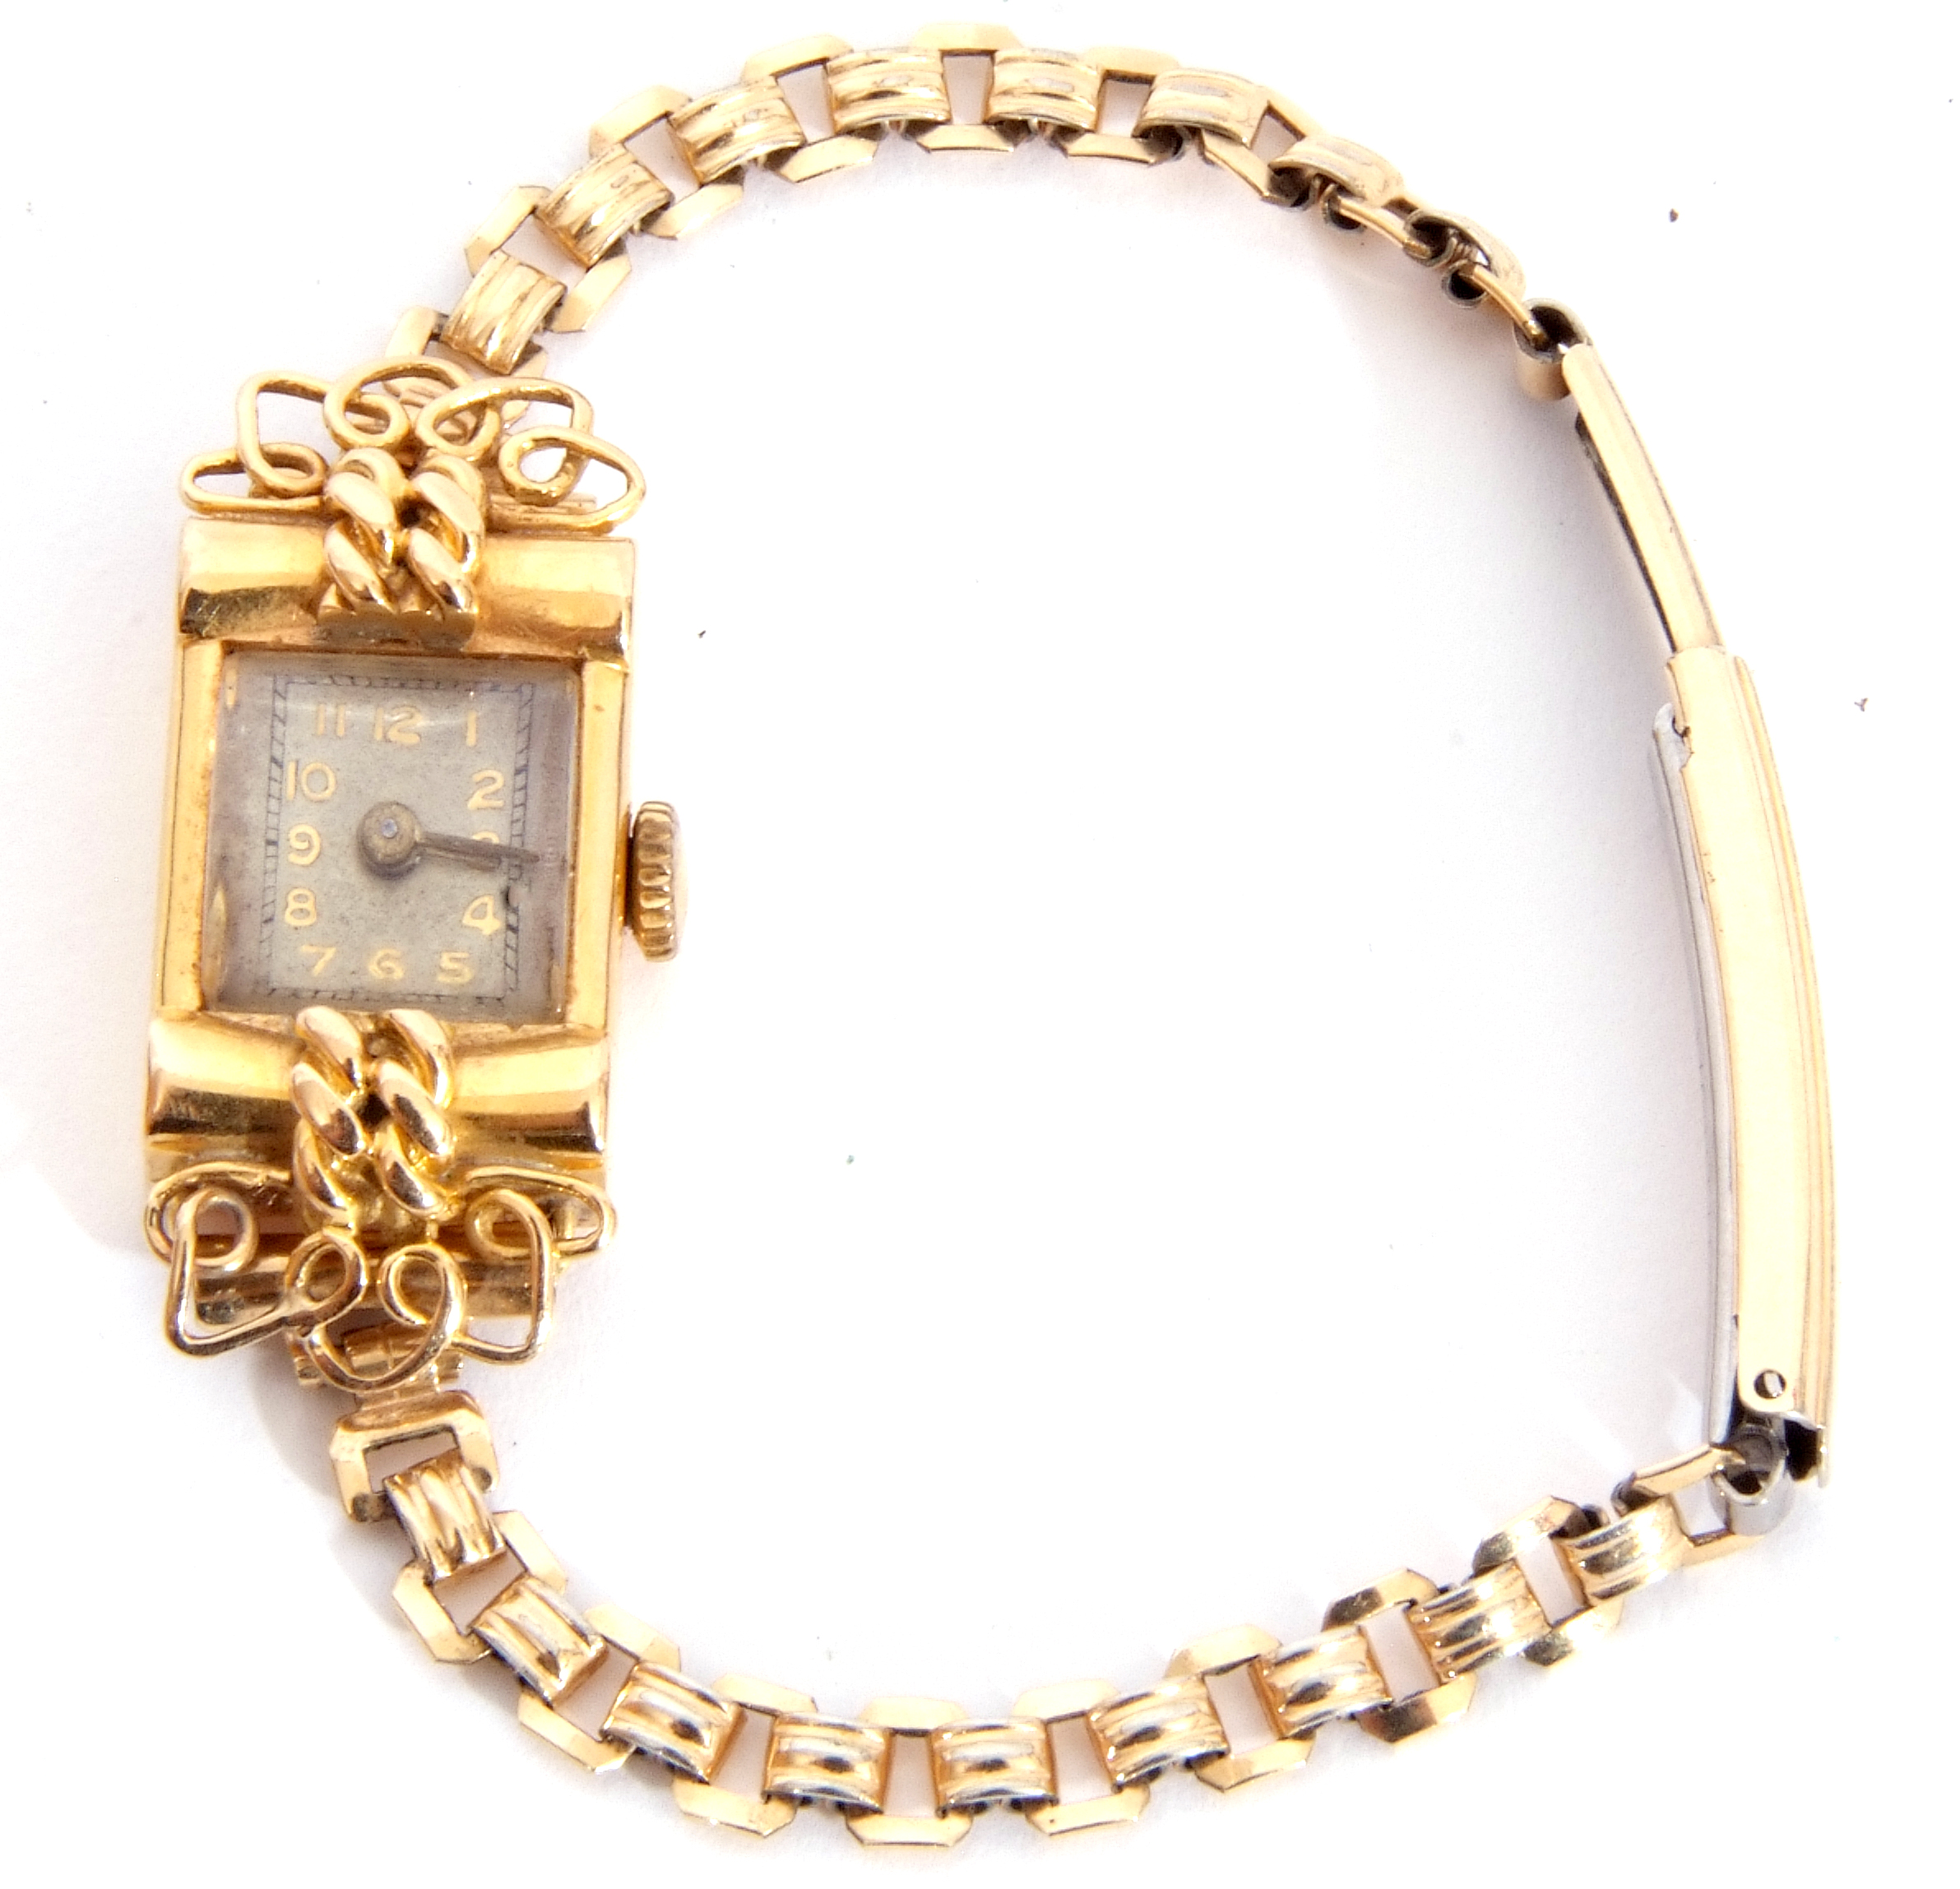 Second quarter of 20th century ladies cased French wristwatch, the rectangular shaped case with un- - Image 2 of 6